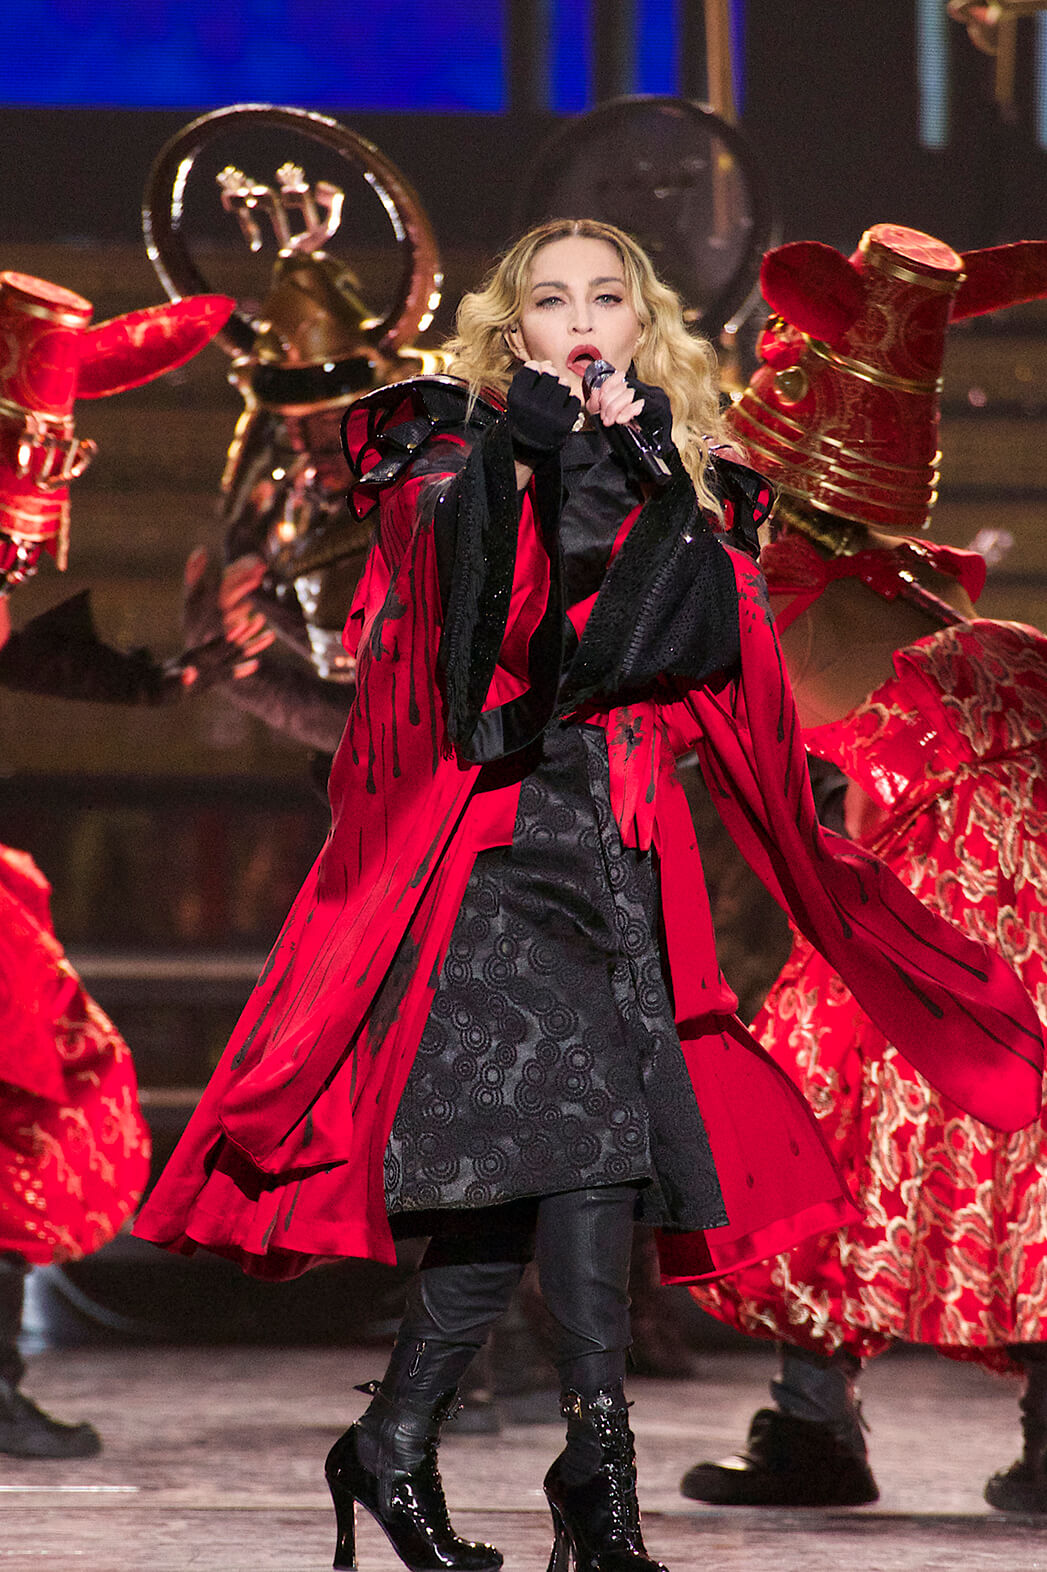 Madonna en el Rebel Heart Tour de 2016. Fotografía: Getty Images